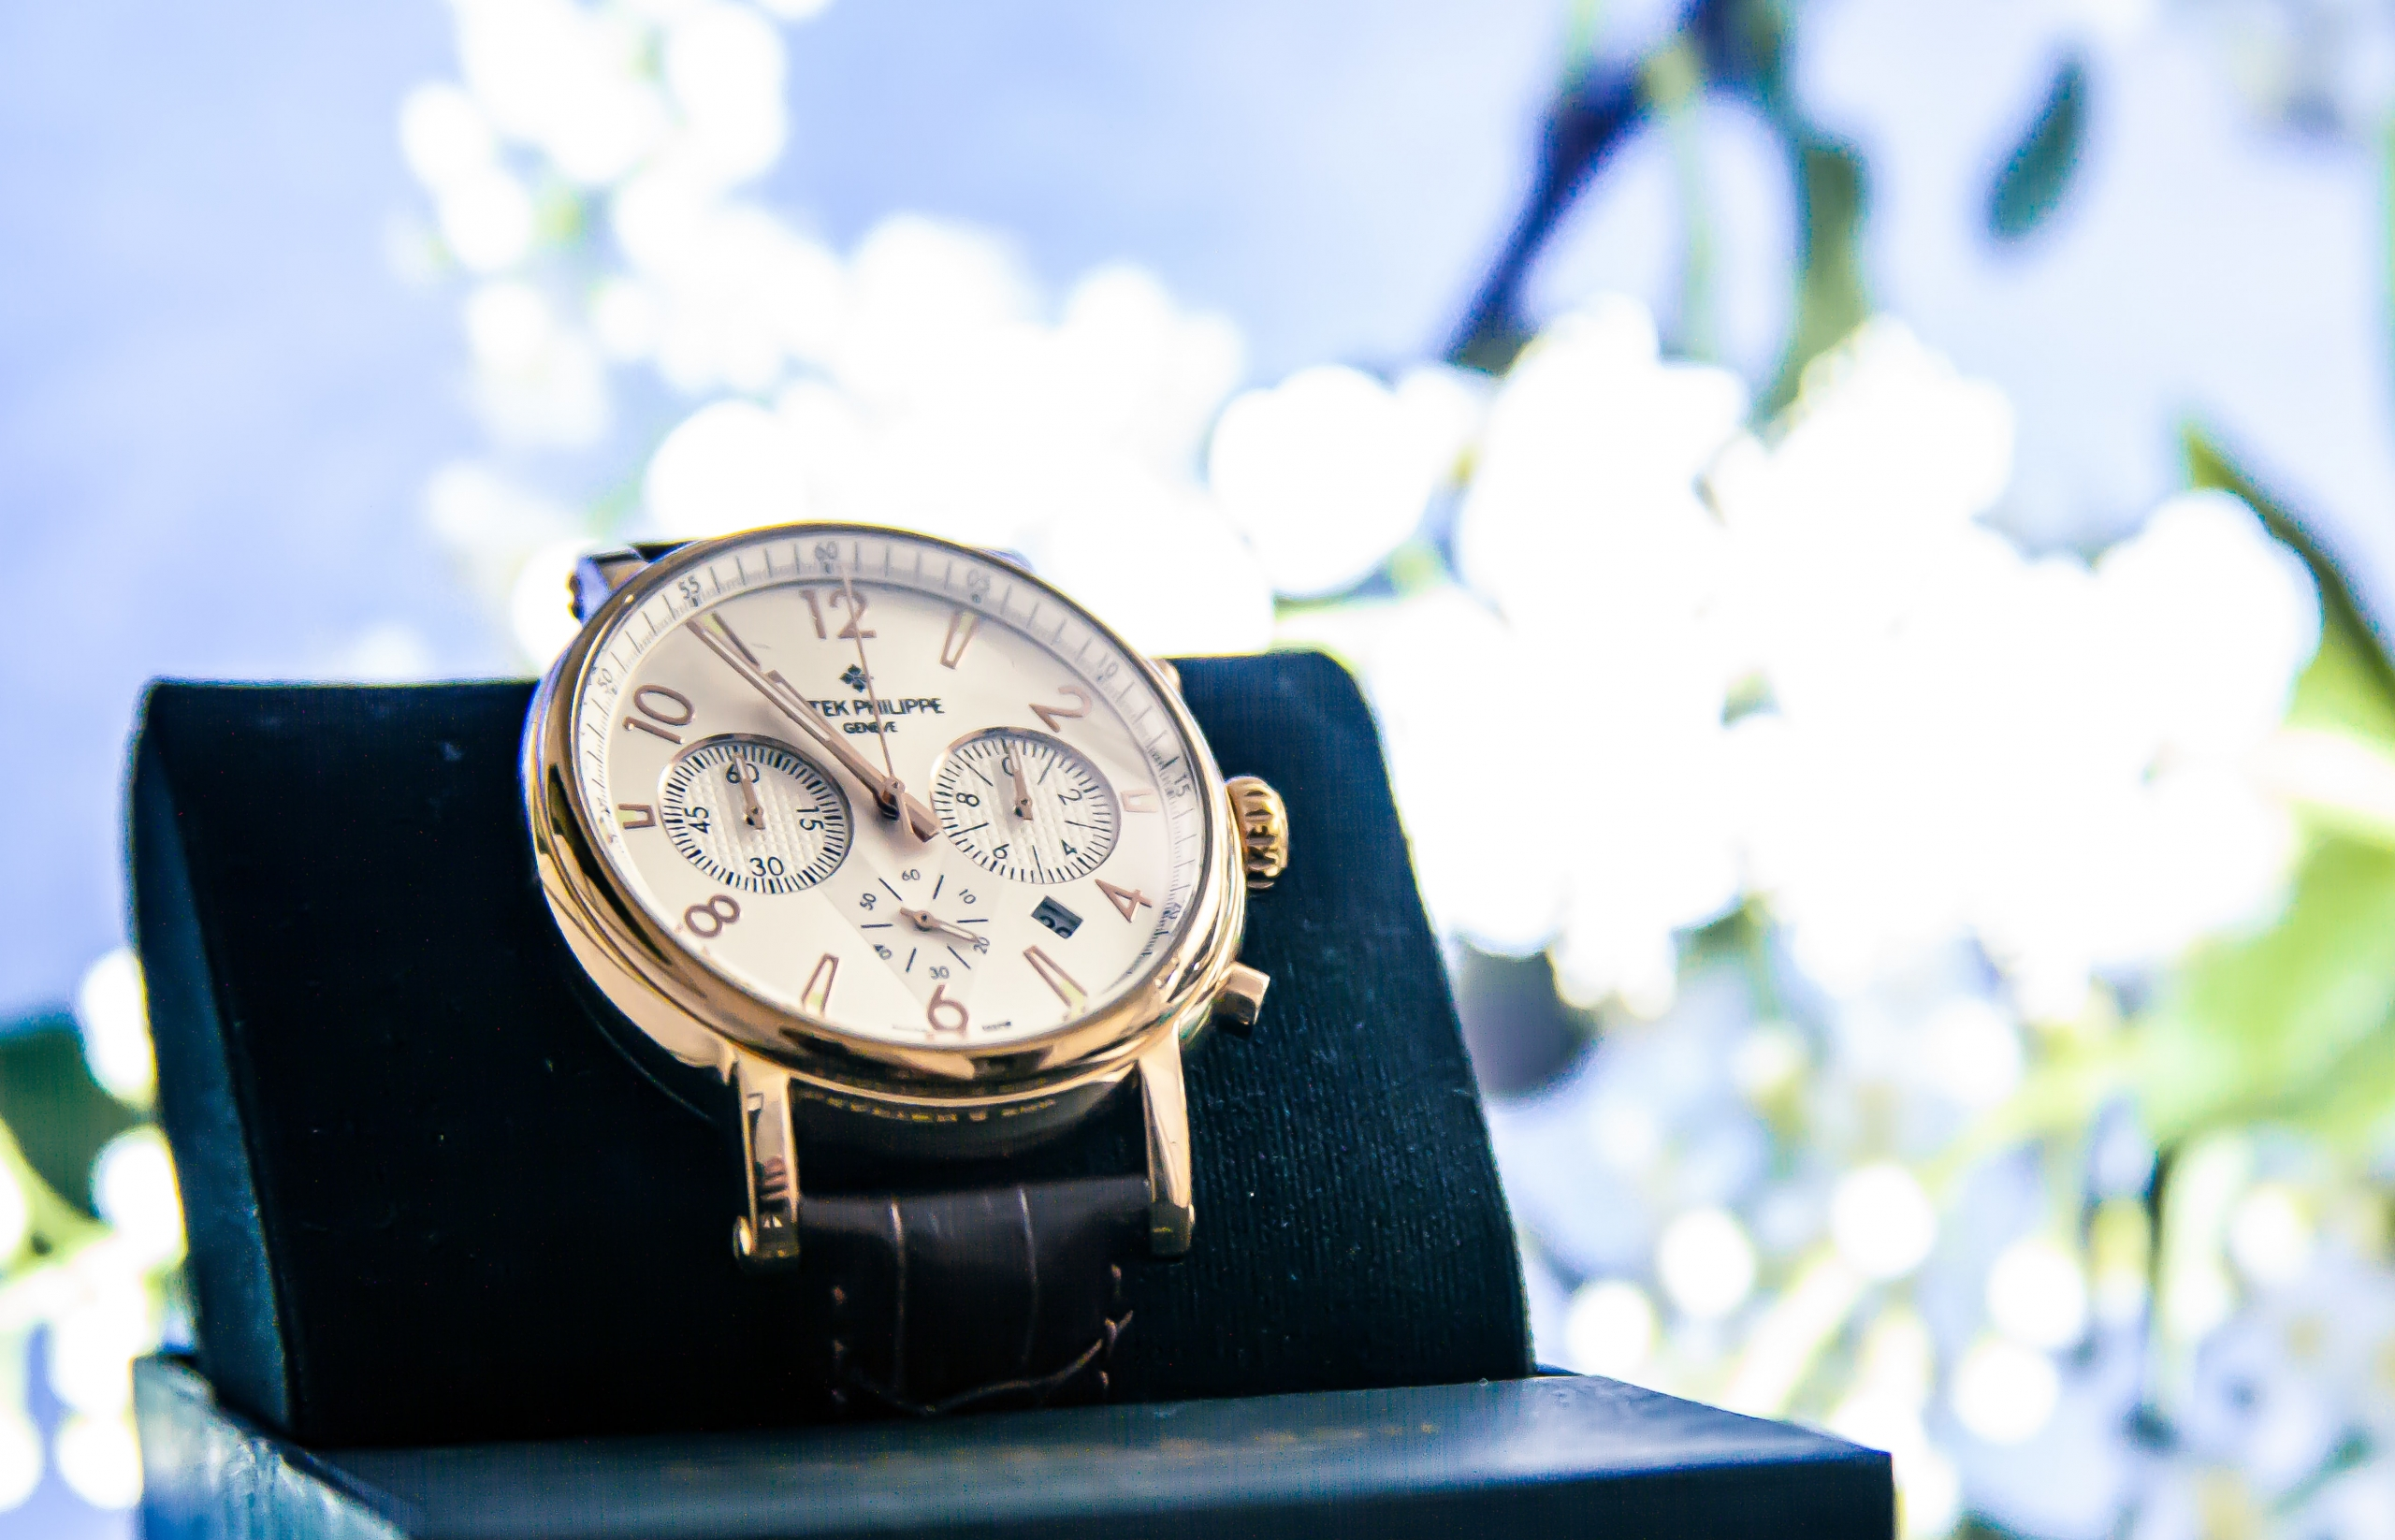 Top 10 Most Expensive Patek Phillipe Watches Ever Sold on Auction as of 2021, and Their Prices